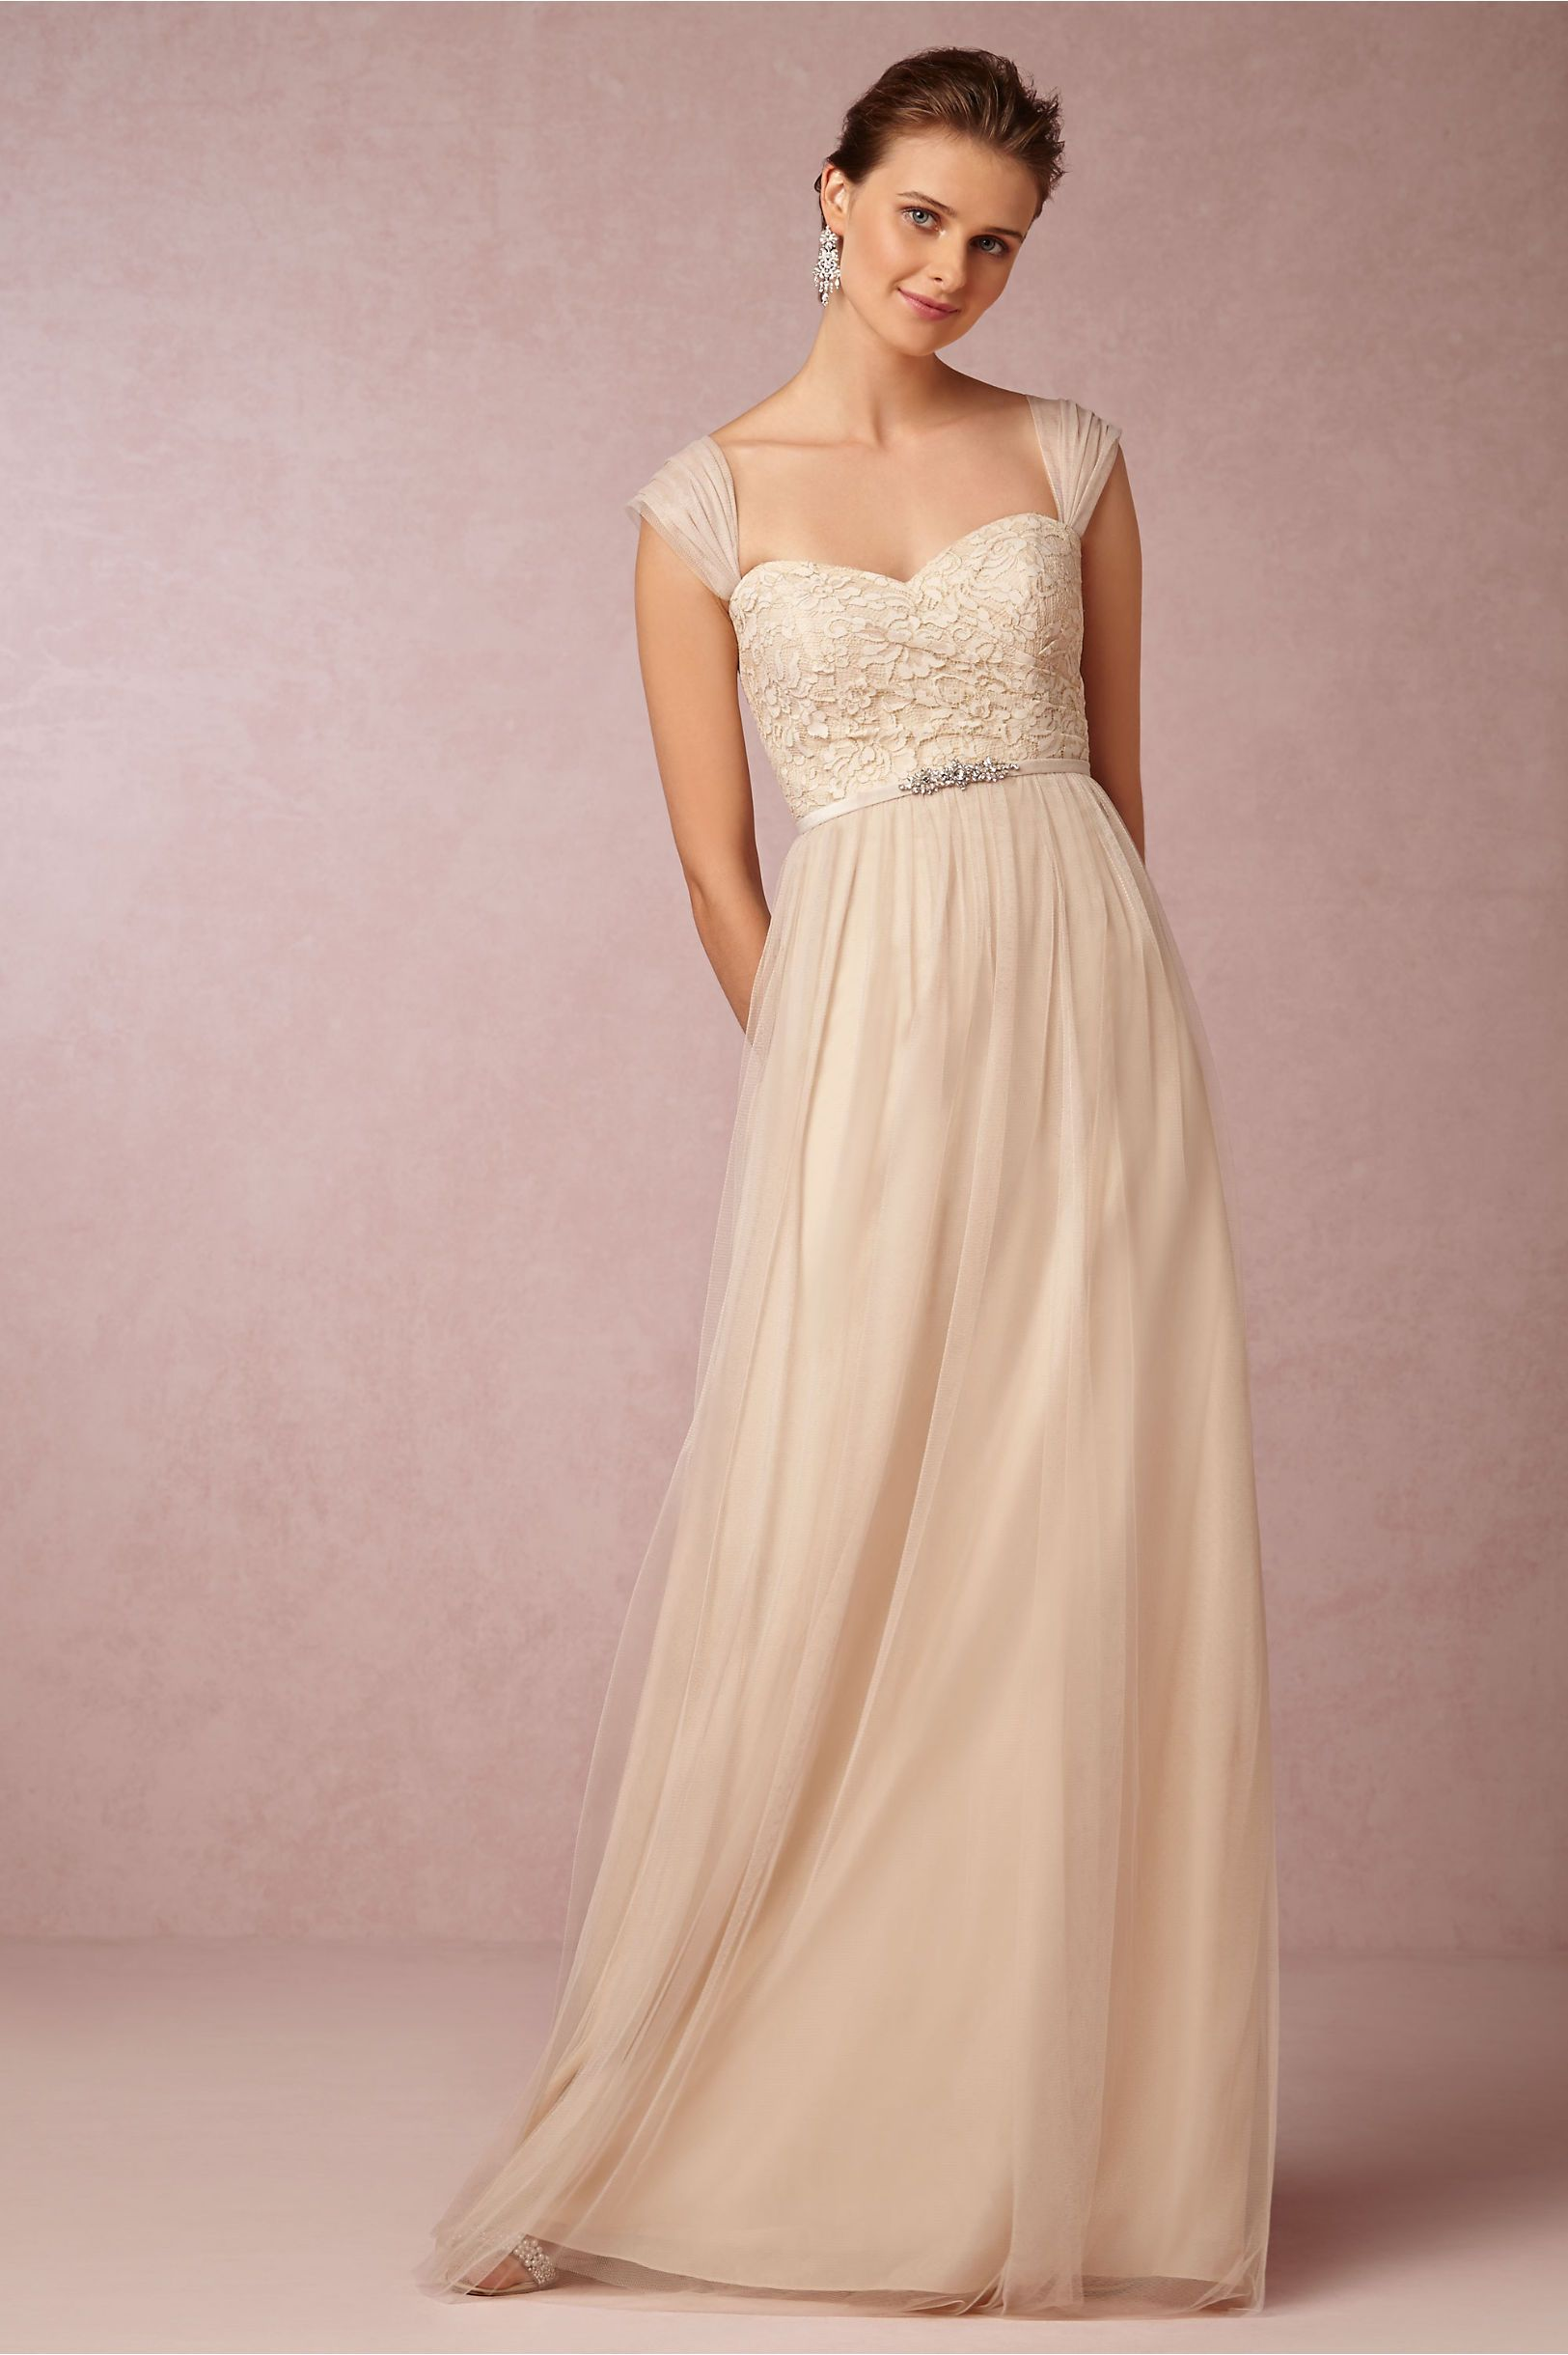 Juliette Dress in cashmere by Jenny Yoo for BHLDN | Fall Wedding ...